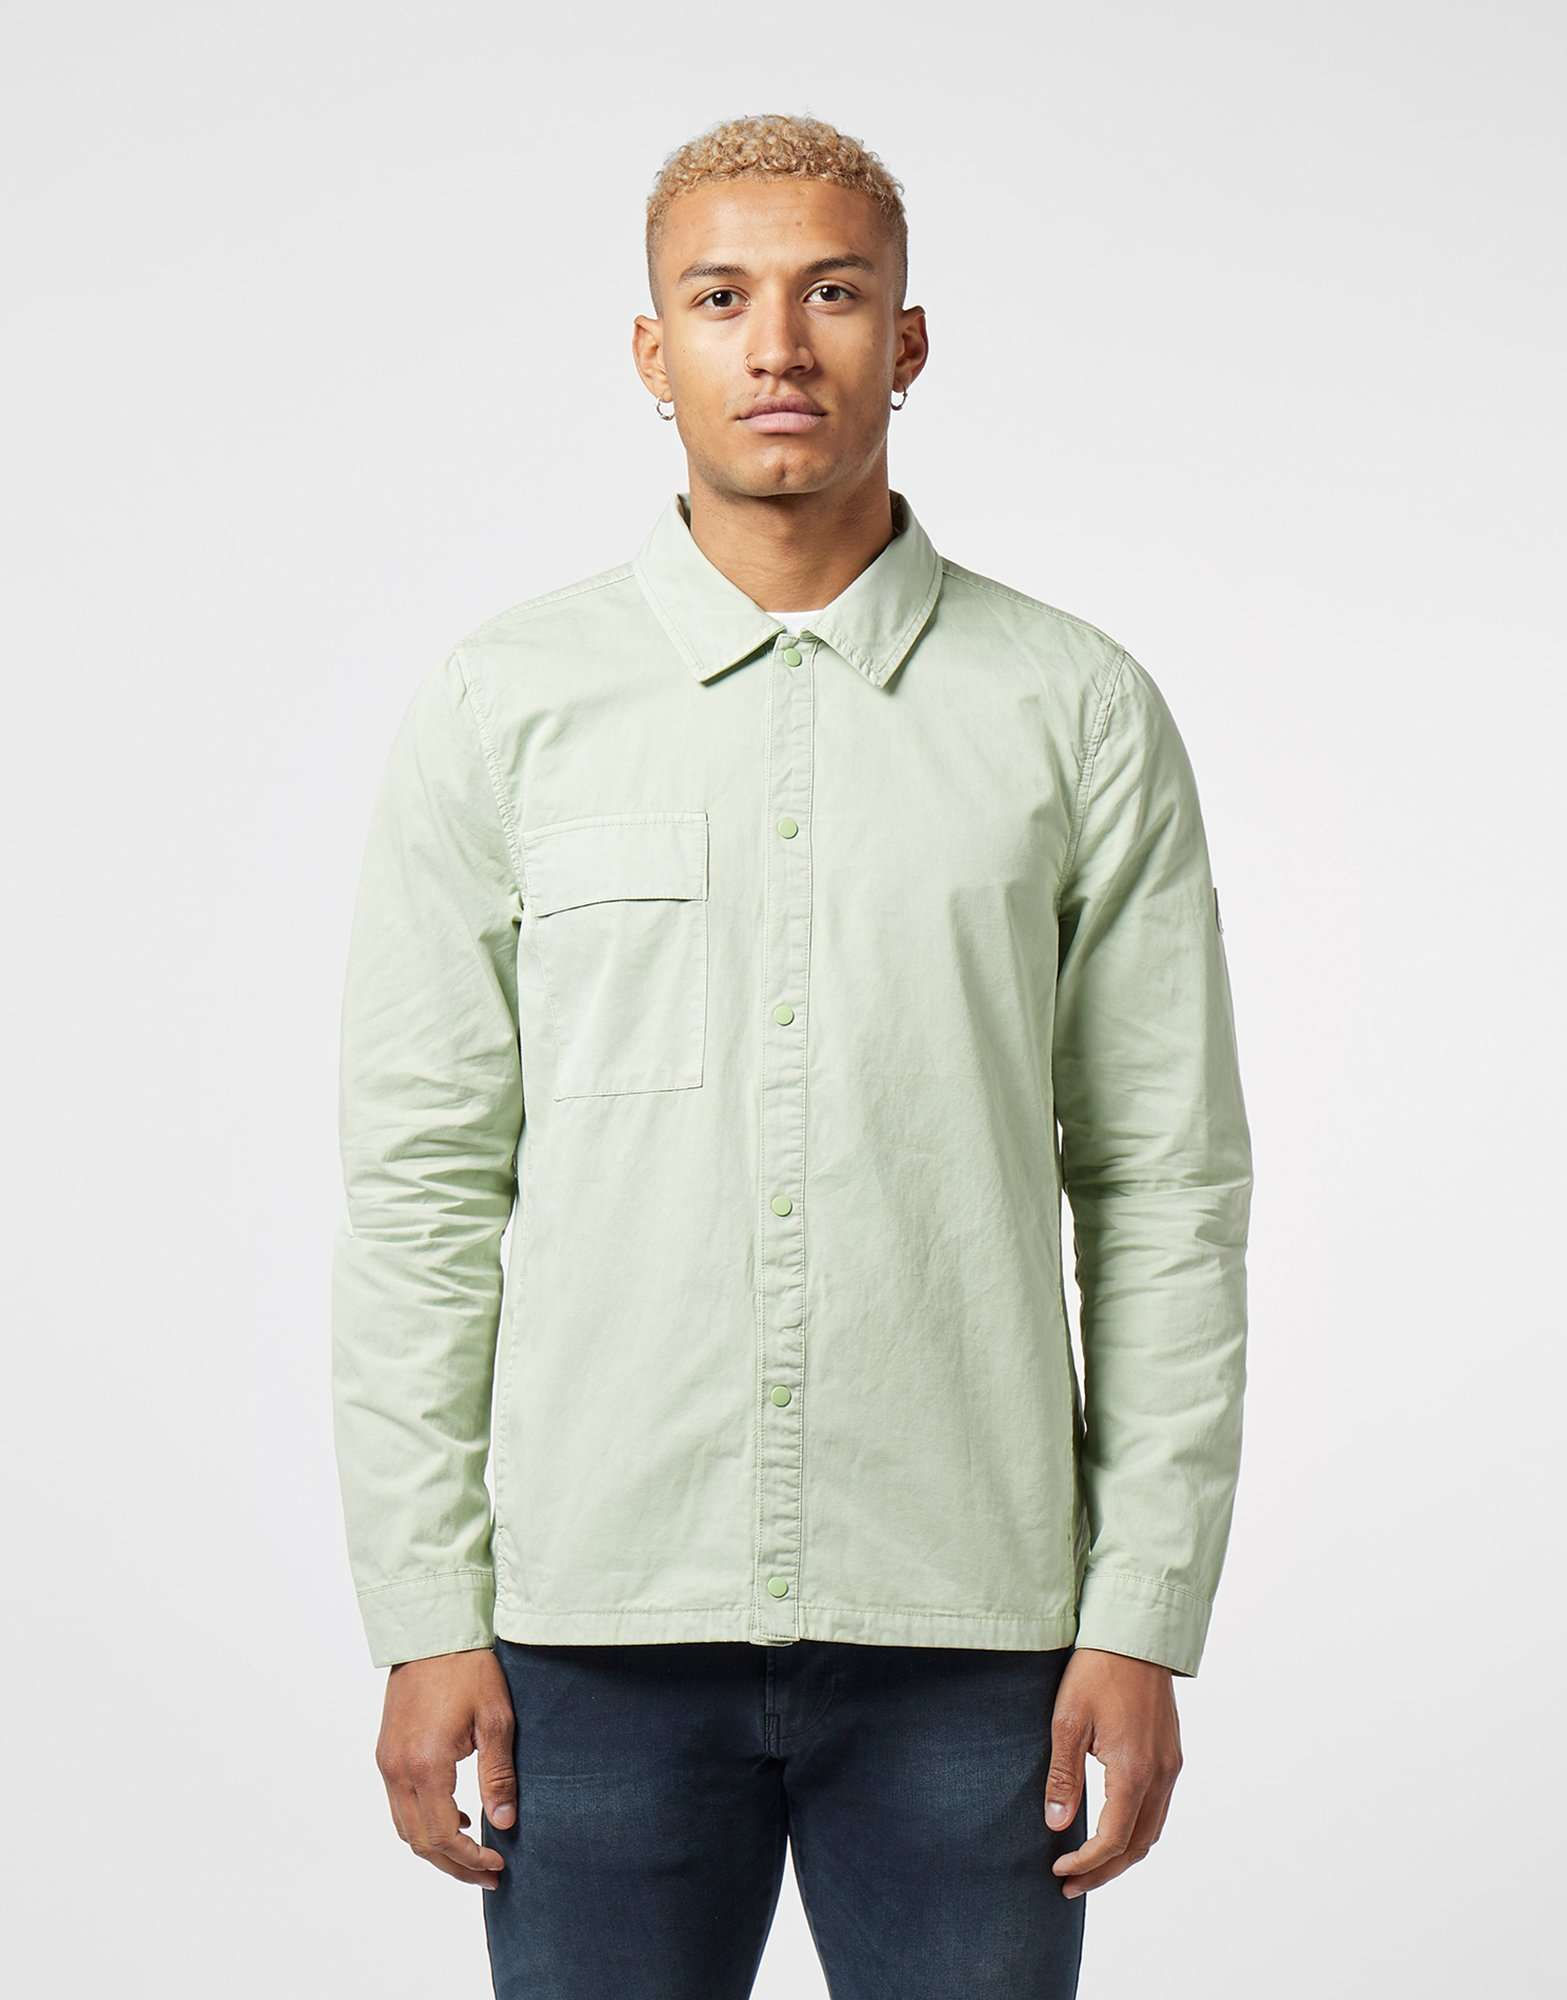 Penfield Blackstone Overshirt